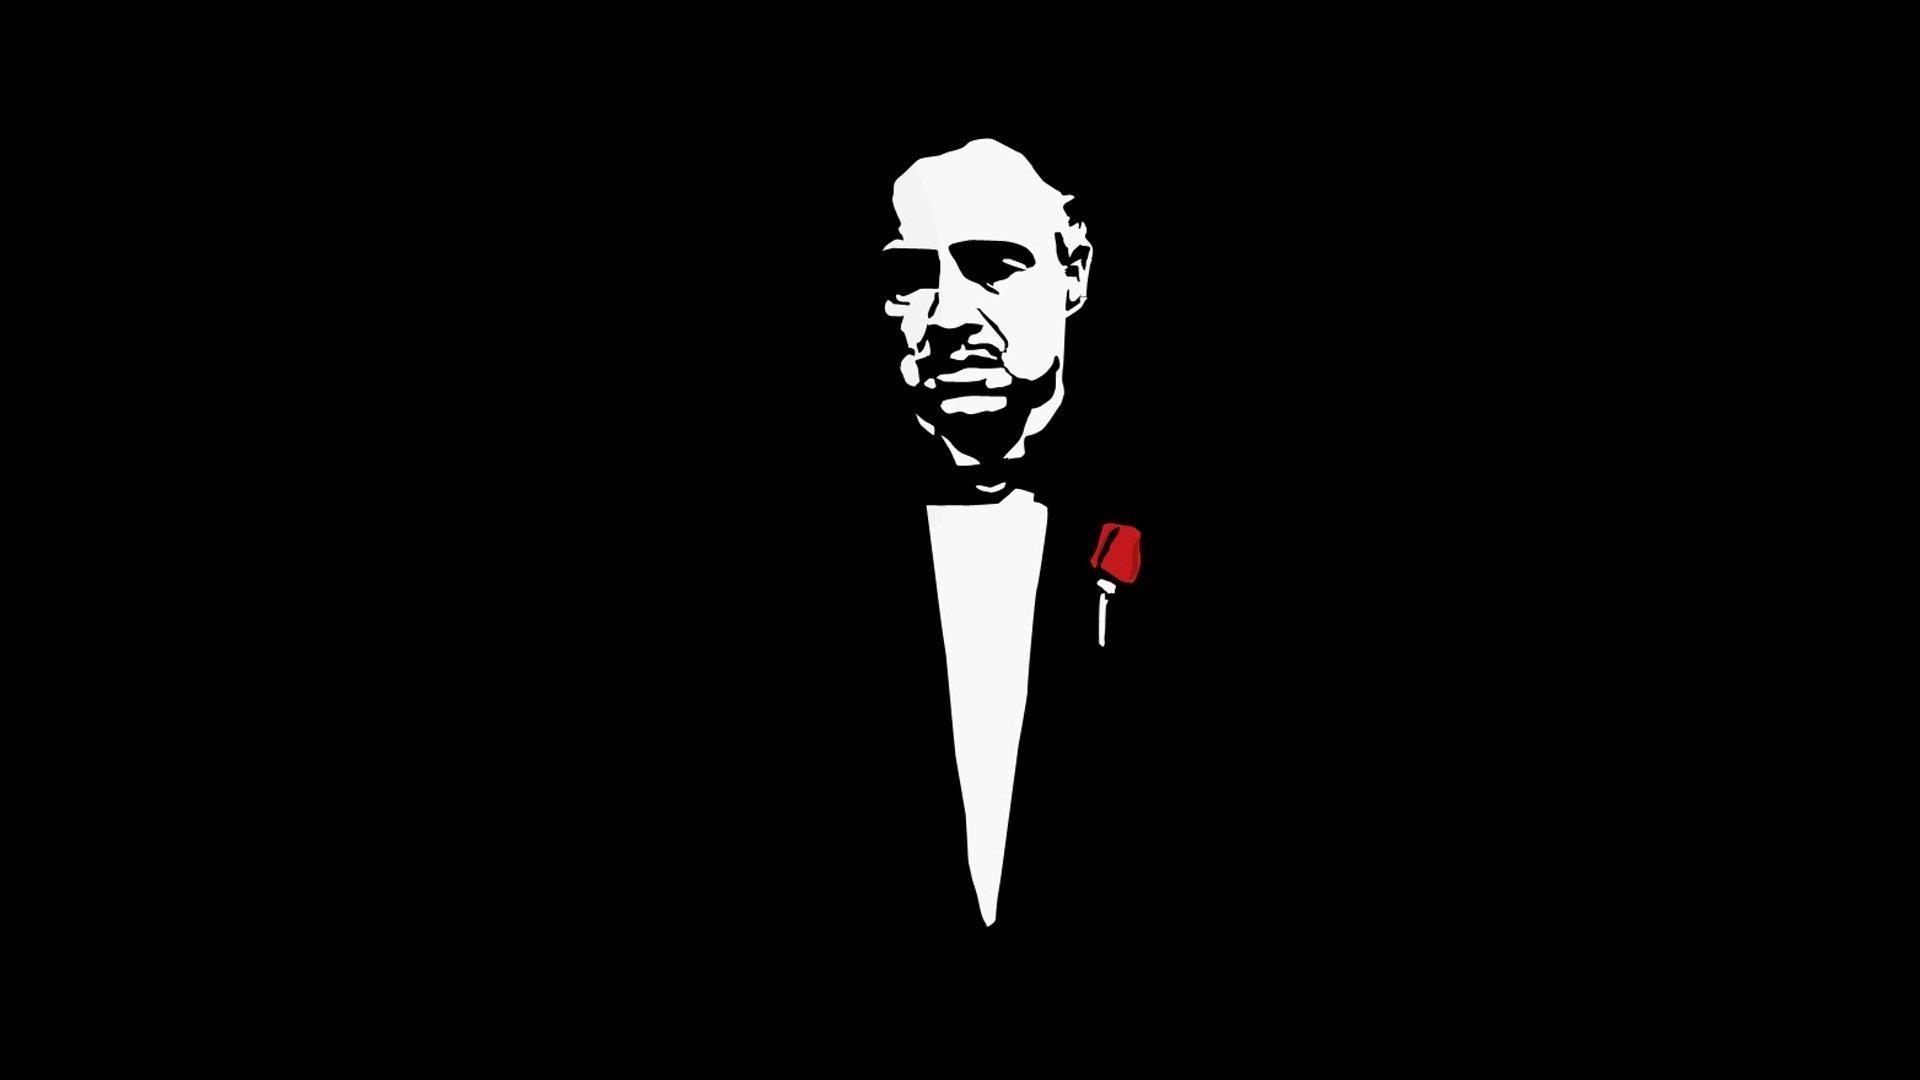 Godfather Wallpapers HD Free download